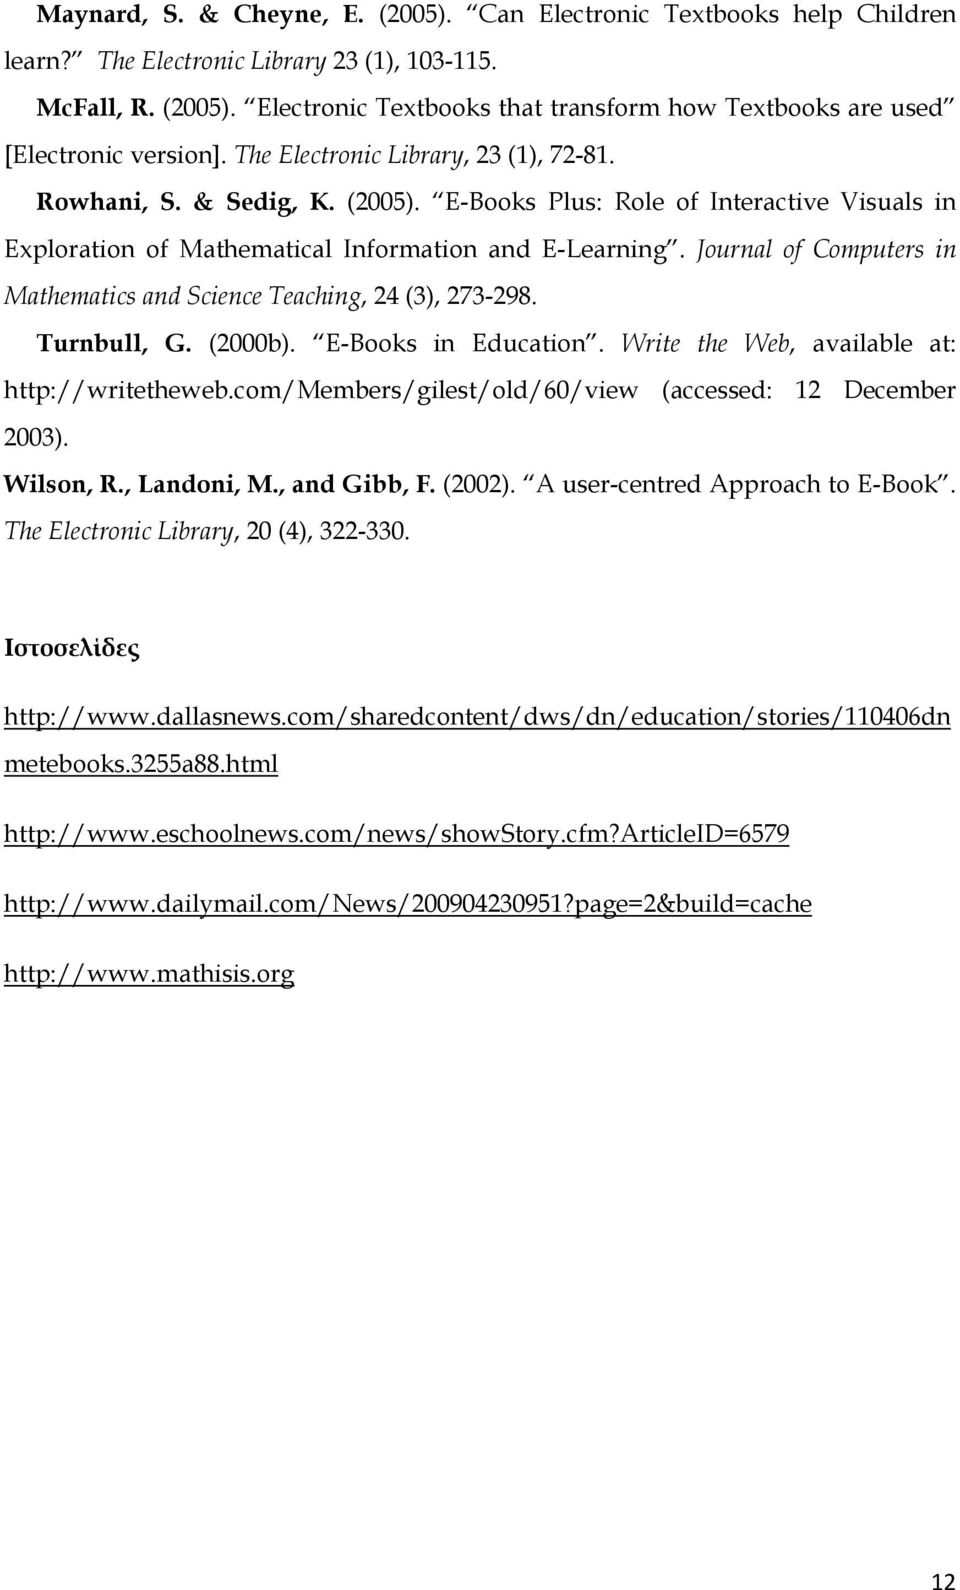 Journal of Computers in Mathematics and Science Teaching, 24 (3), 273-298. Turnbull, G. (2000b). E-Βooks in Education. Write the Web, available at: http://writetheweb.